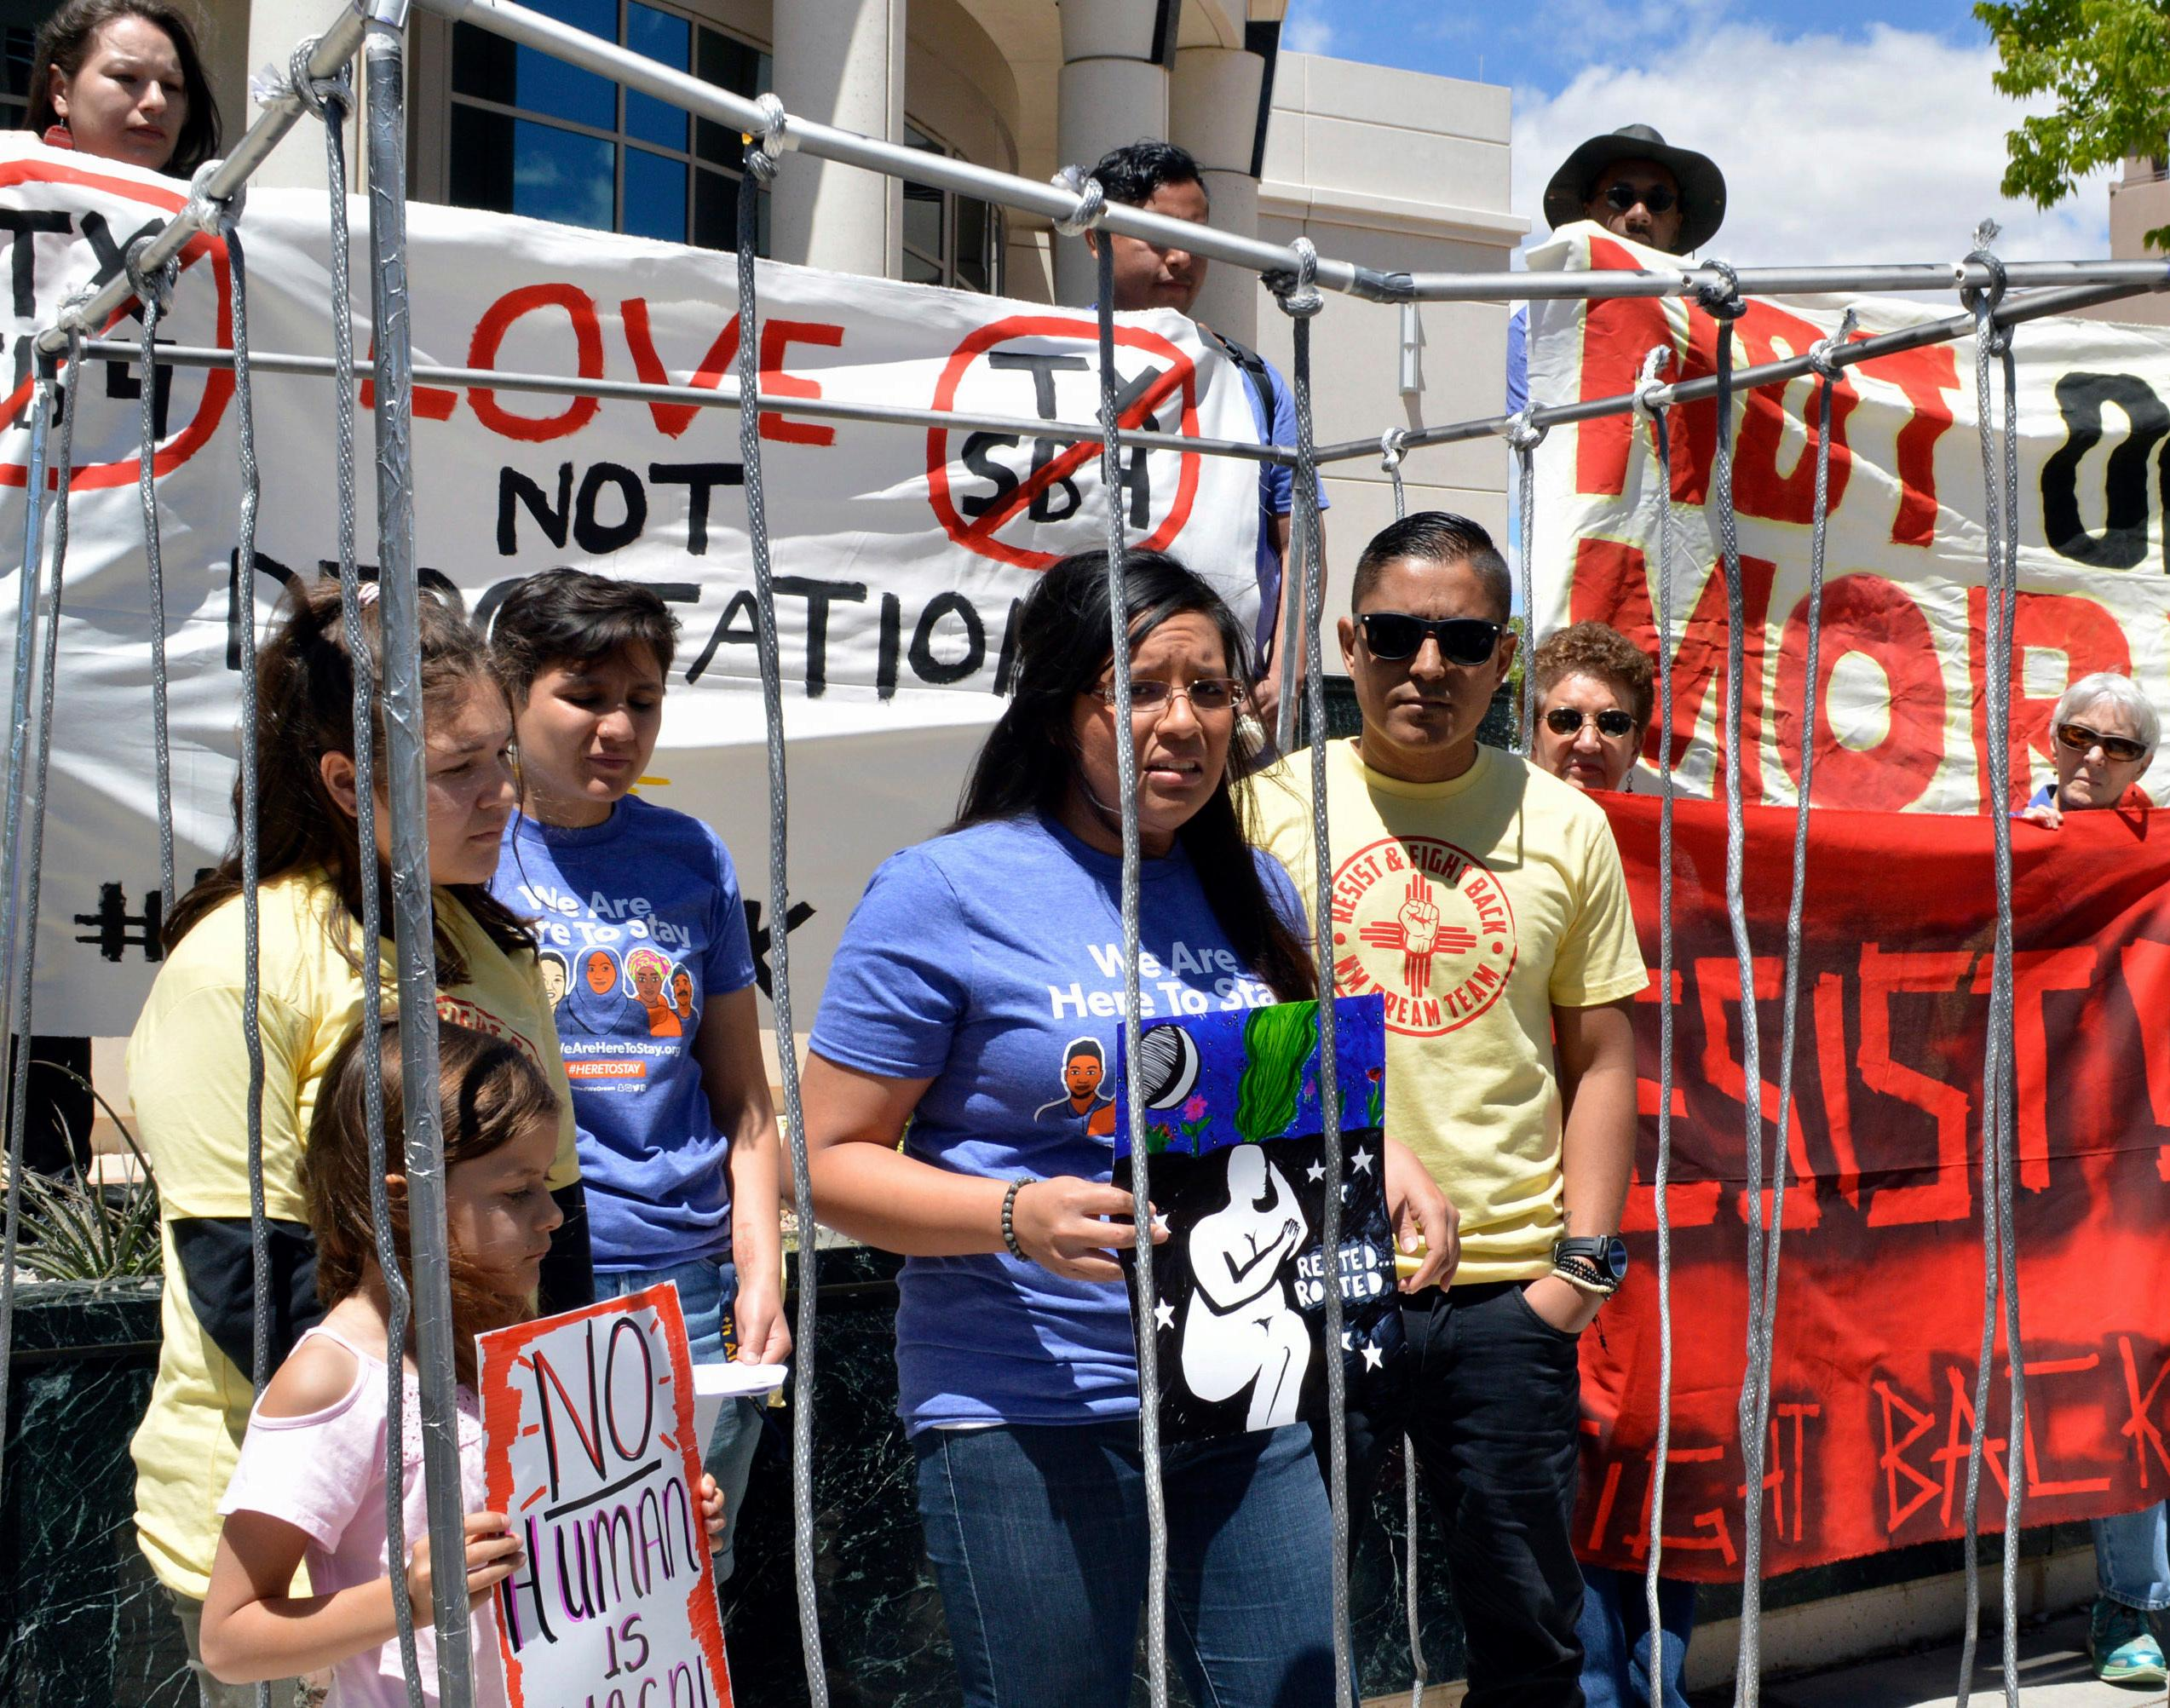 FILE - In this May 1, 2017 file photo, immigrant rights advocates speak out against immigration policies of President Donald Trump while placing themselves in mock detention in Albuquerque, N.M., to mark May Day. The U.S. Justice Department is including New Mexico's most populous county in an effort to pressure cities to cooperate with federal immigration authorities. Bernalillo County was one of roughly two dozen jurisdictions to receive warning letters Wednesday, Jan. 24, 2018, from the Justice Department. (AP Photo/Russell Contreras, File)